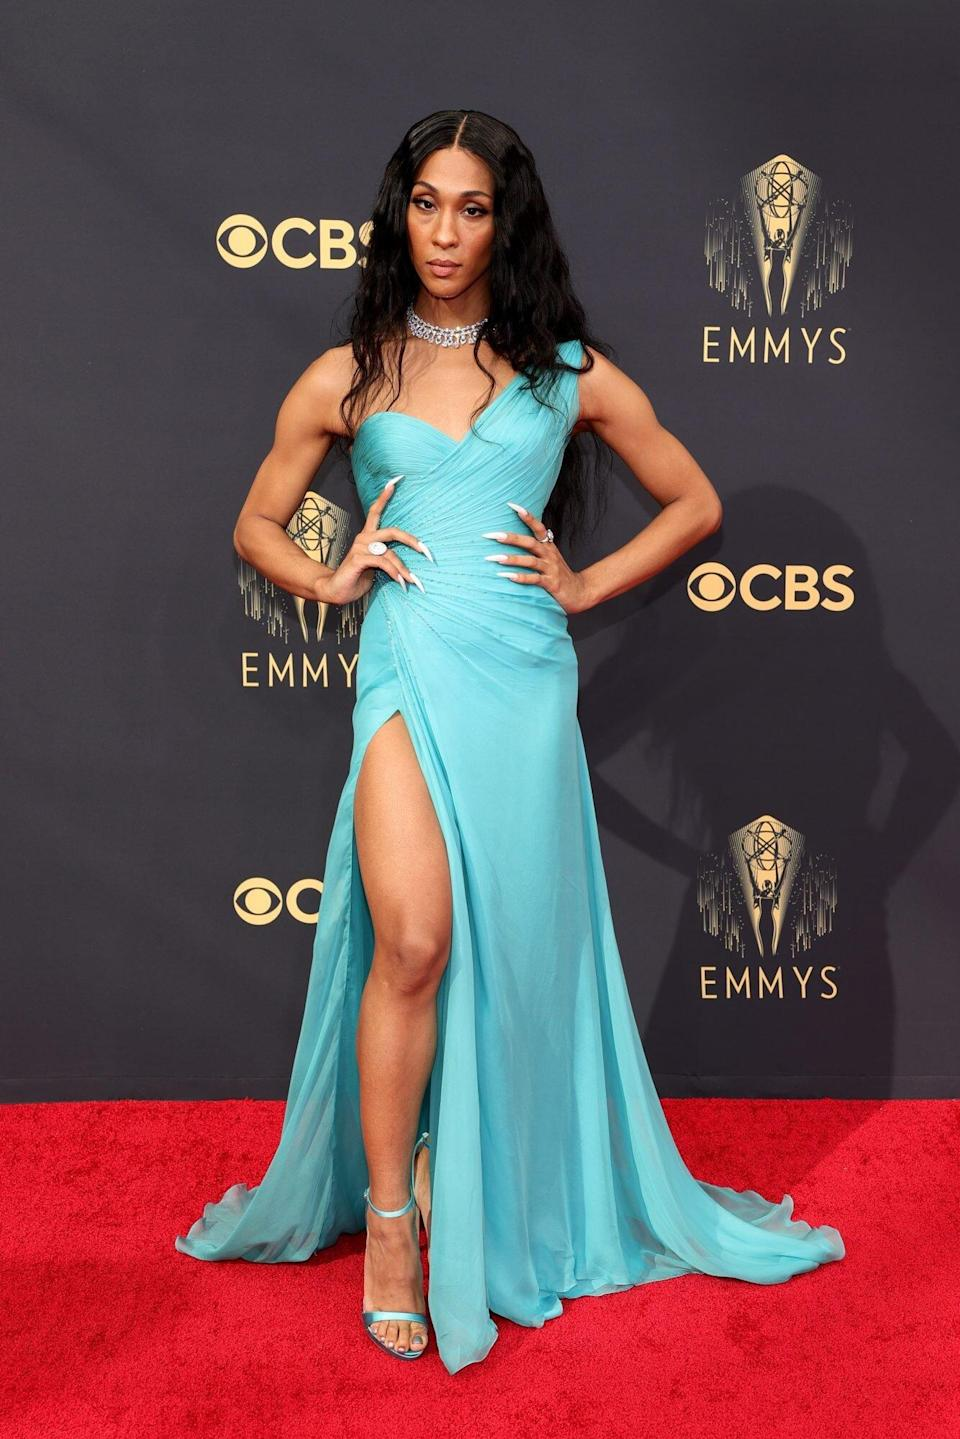 MJ Rodriguez Wore a High-Slit Gown to the Emmys